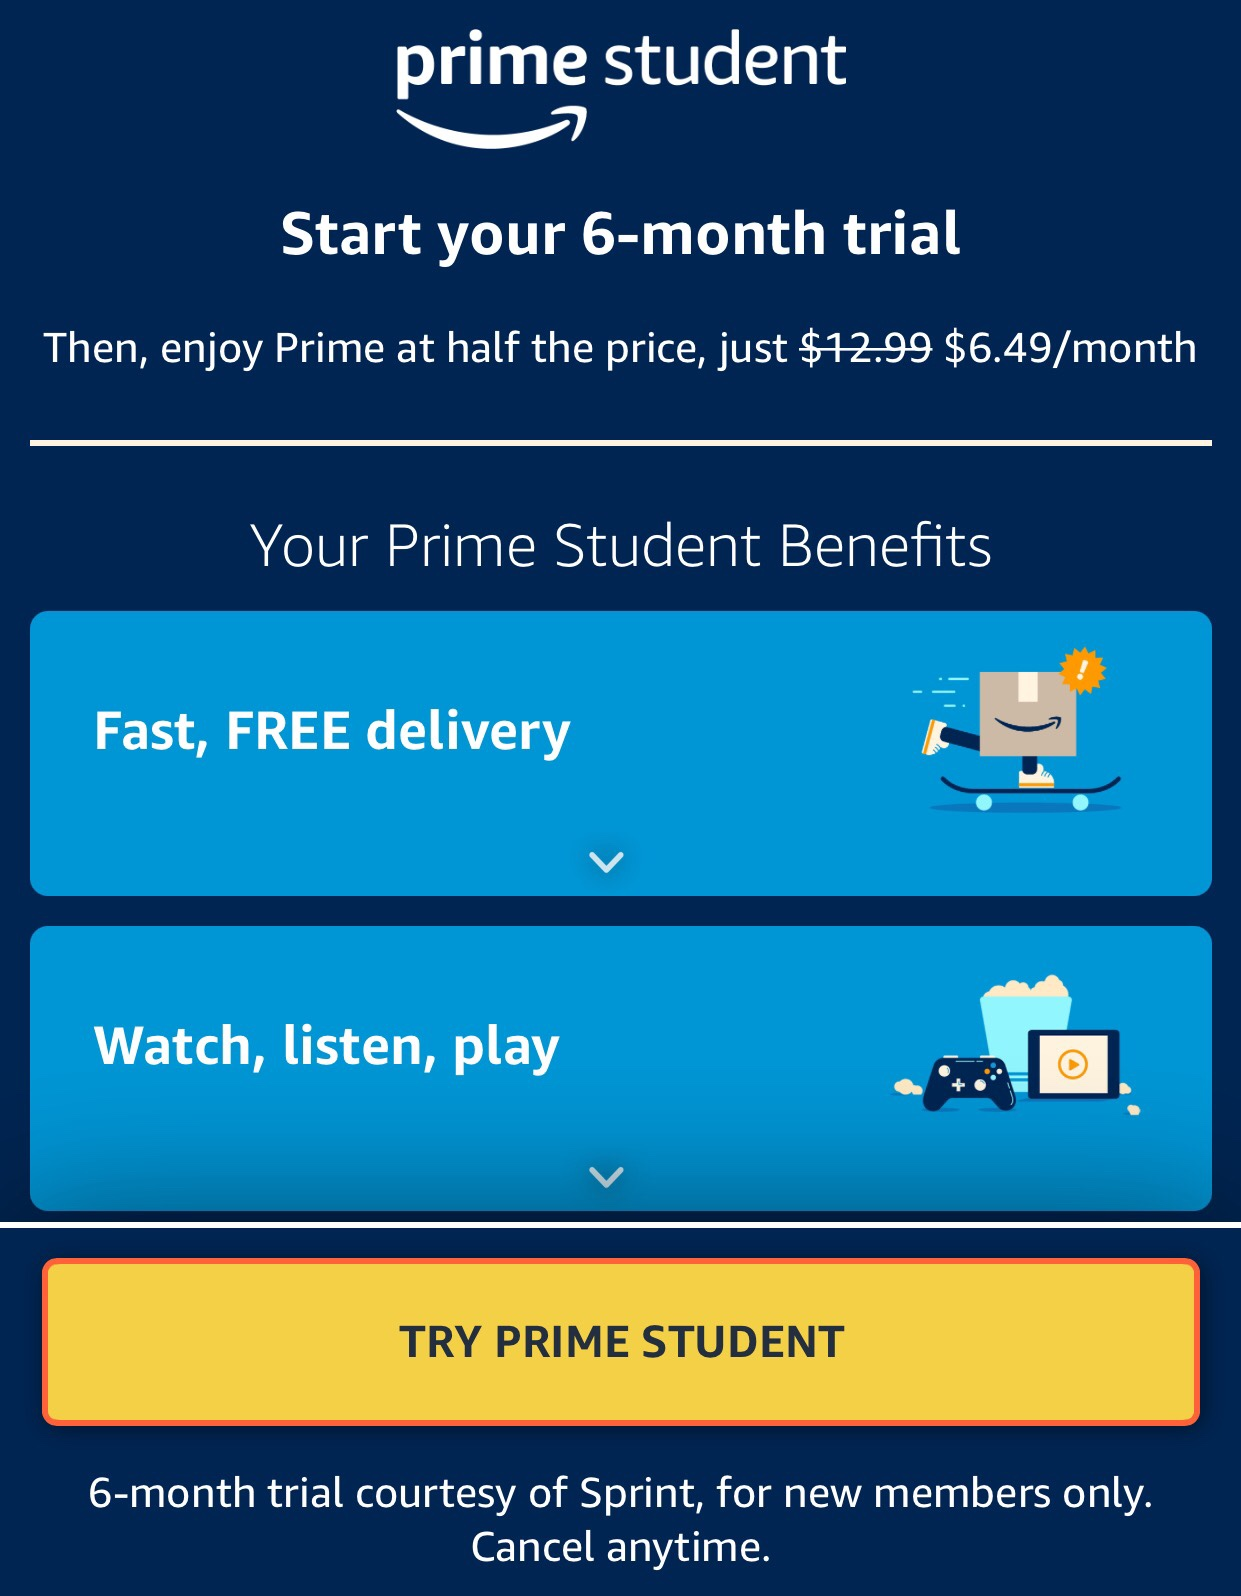 Prime Student 6-month Trial